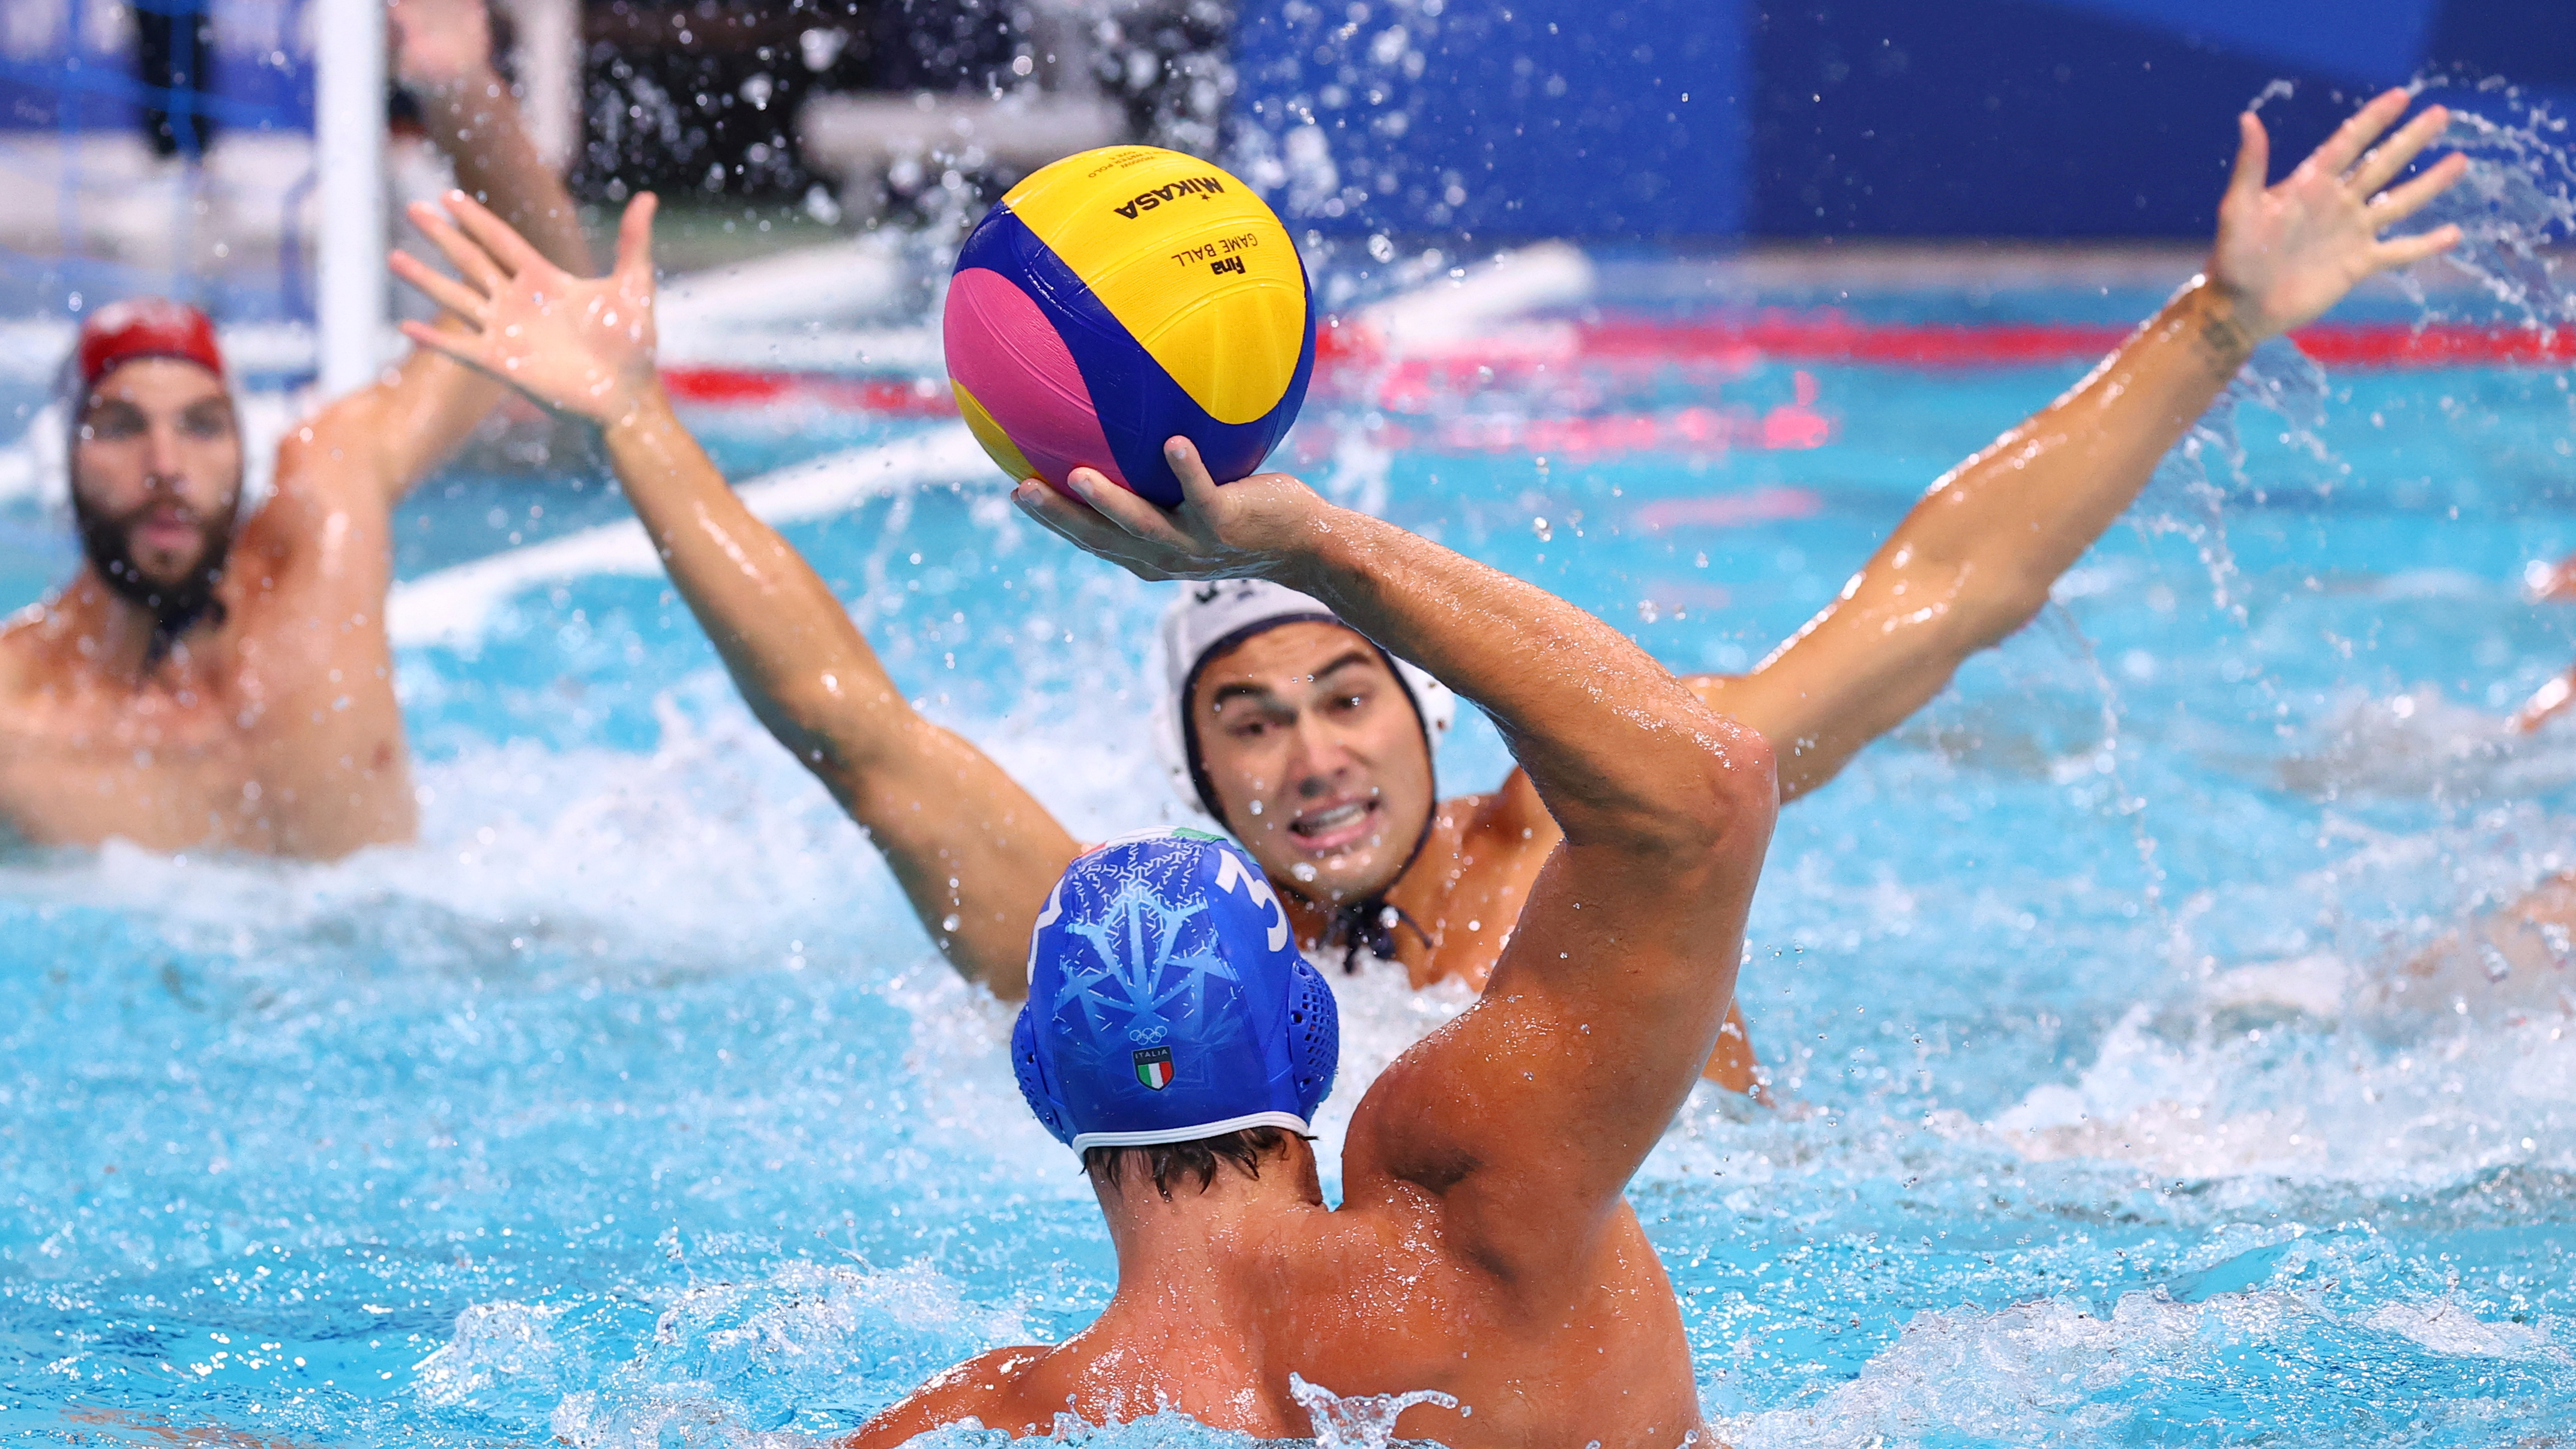 Tokyo 2020 Olympics - Water Polo - Men - Group A - United States v Italy - Tatsumi Water Polo Centre, Tokyo, Japan - July 29, 2021. Stefano Luongo of Italy in action. REUTERS/Kacper Pempel